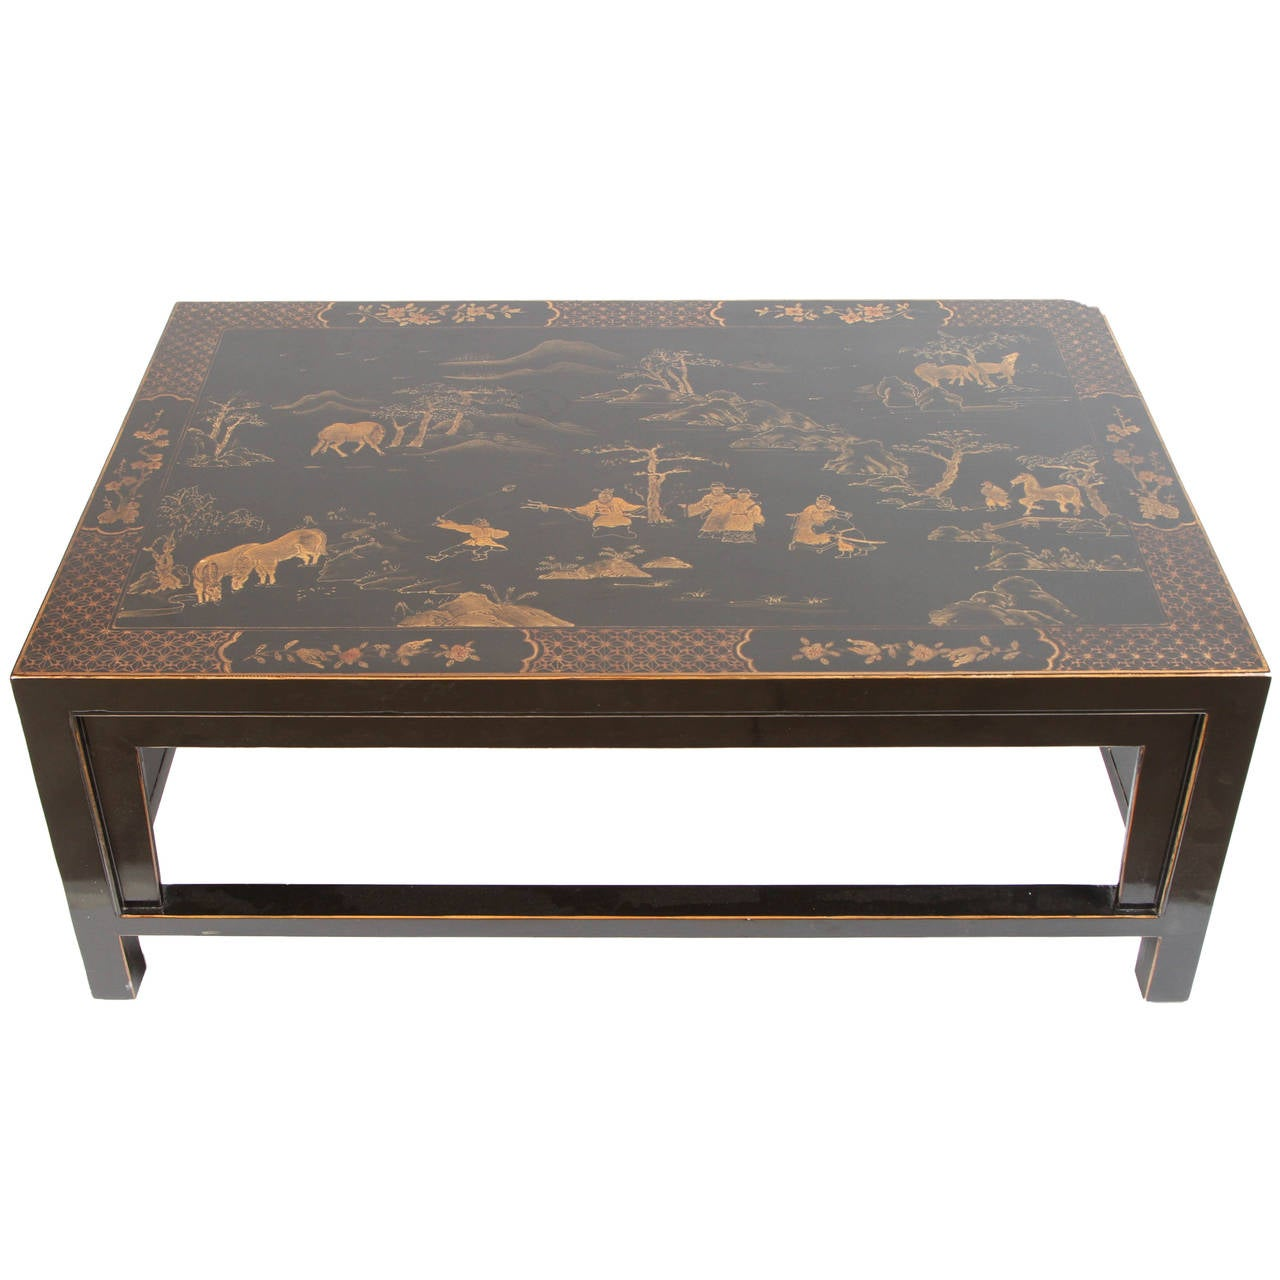 Chinese Chinoiserie Lacquer Coffee Table At 1stdibs